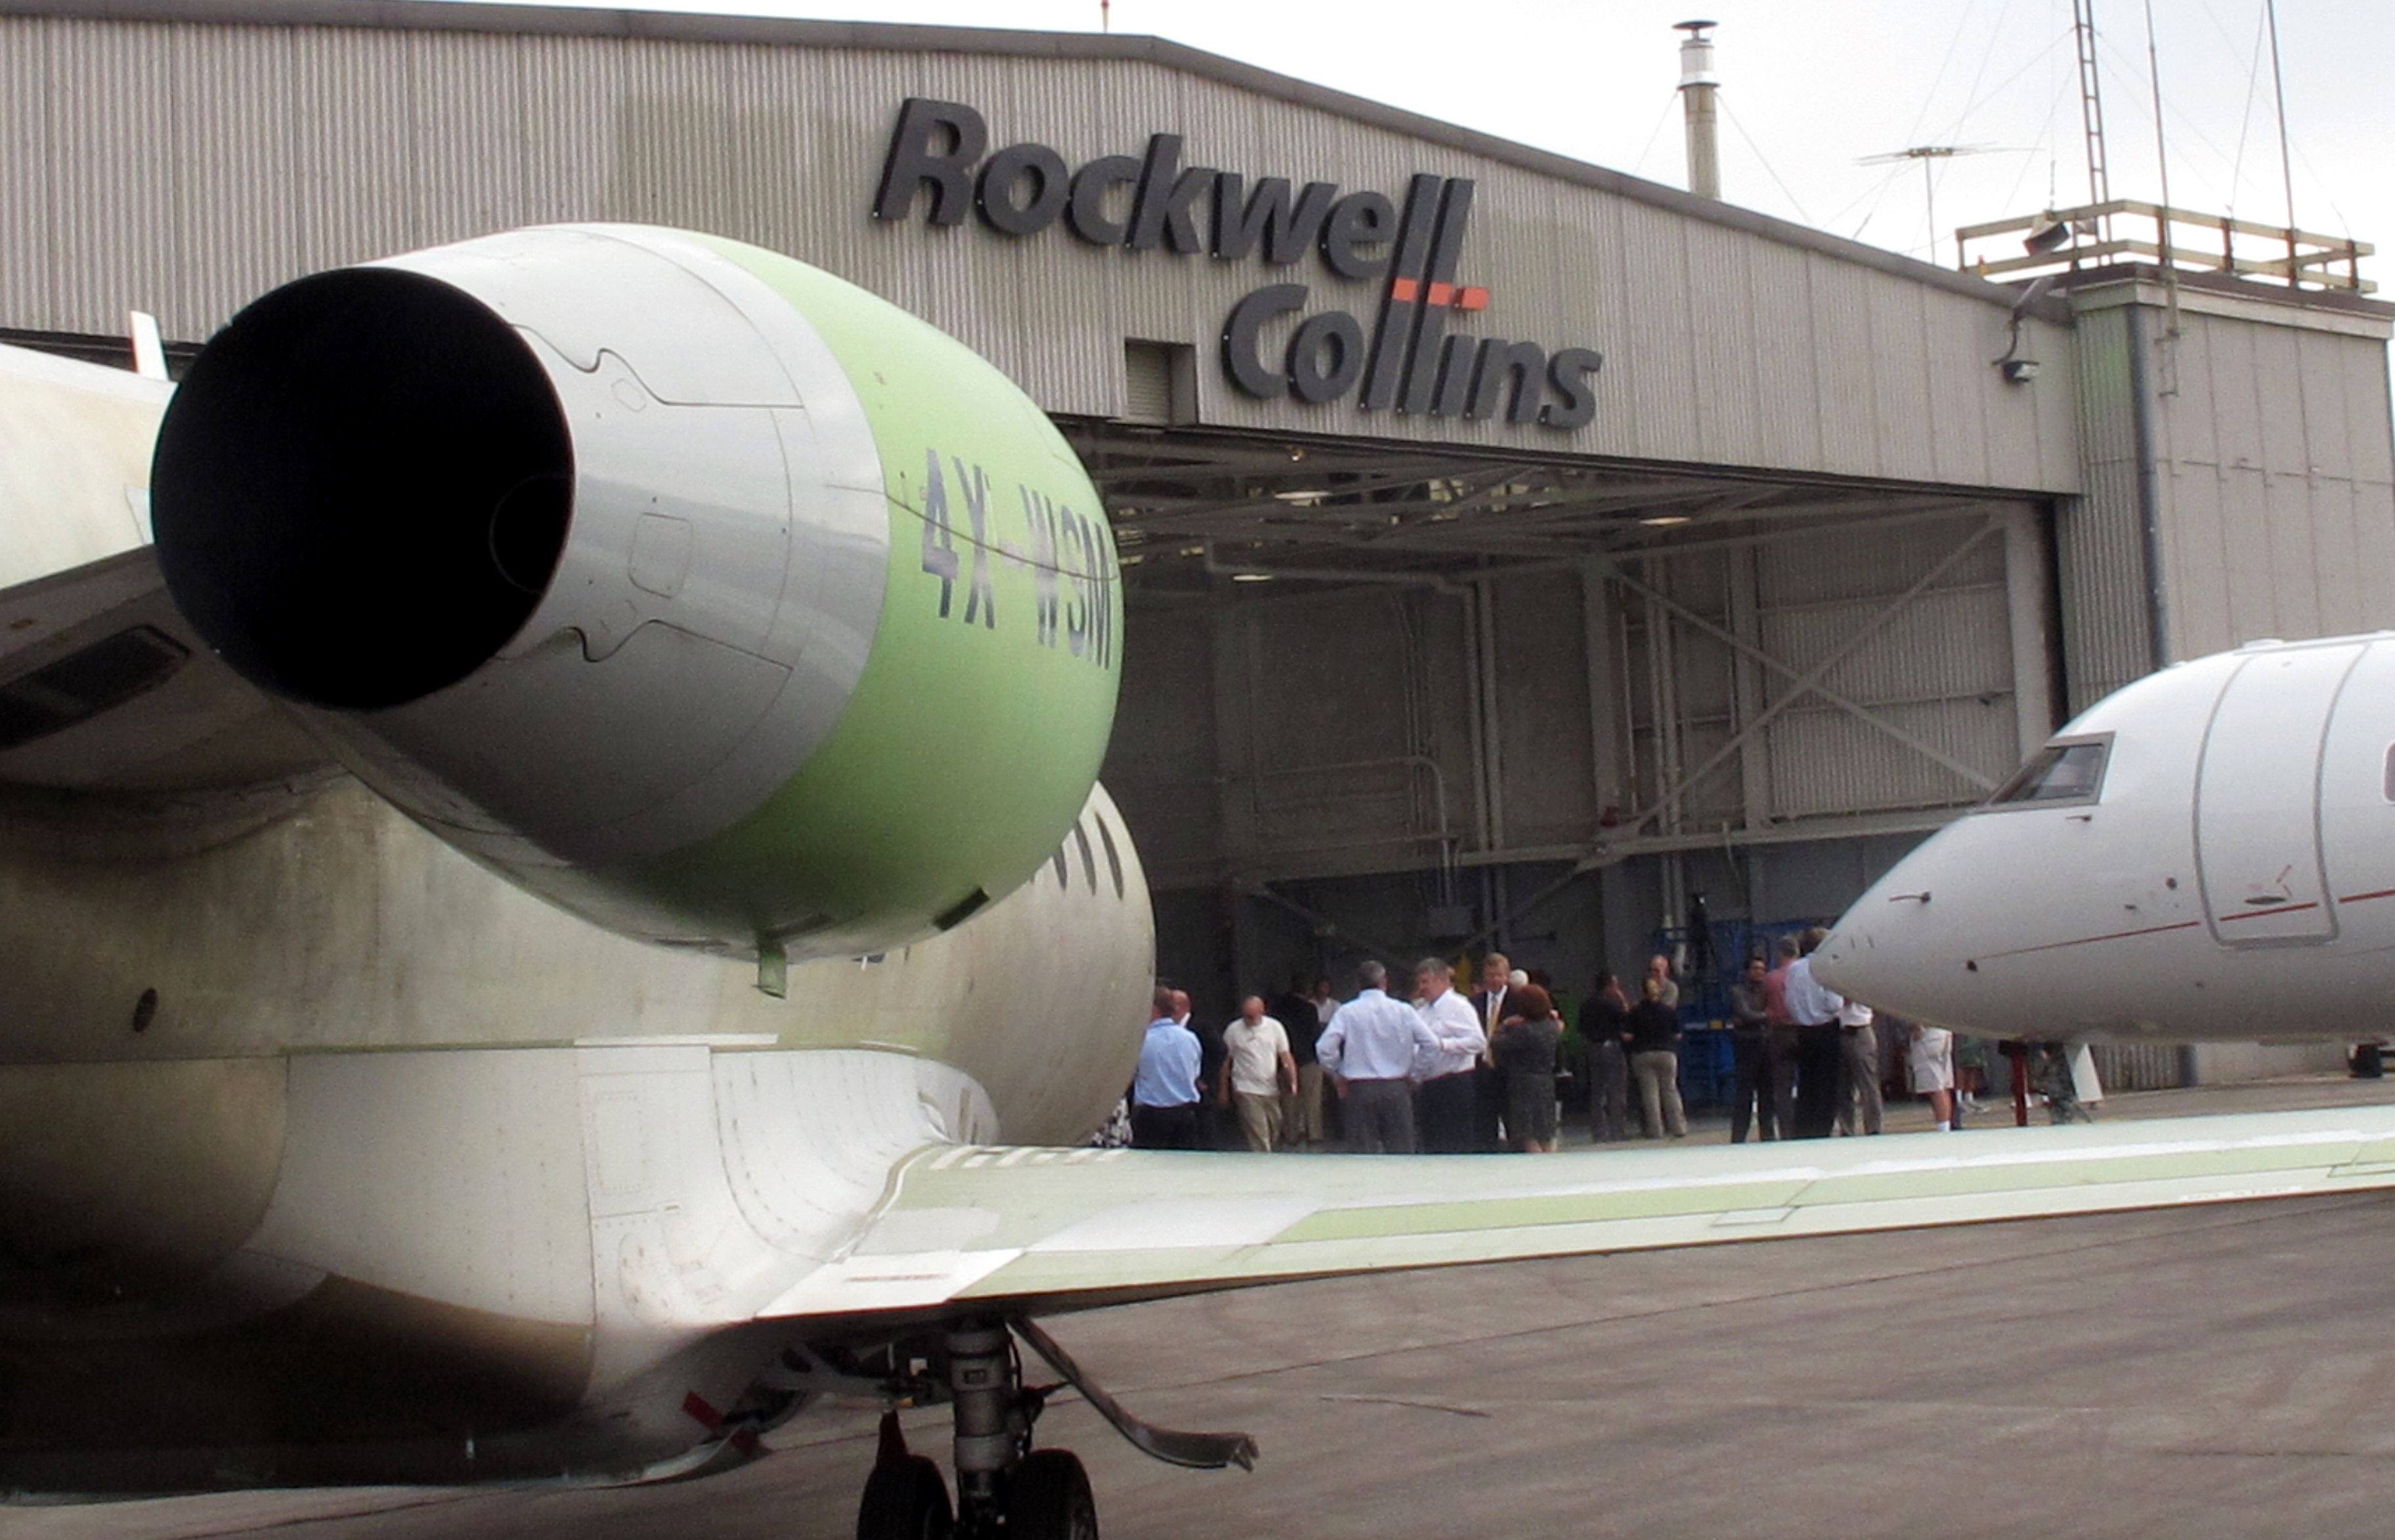 United Technologies' acquisition of Rockwell Collins could set off new M&A wave